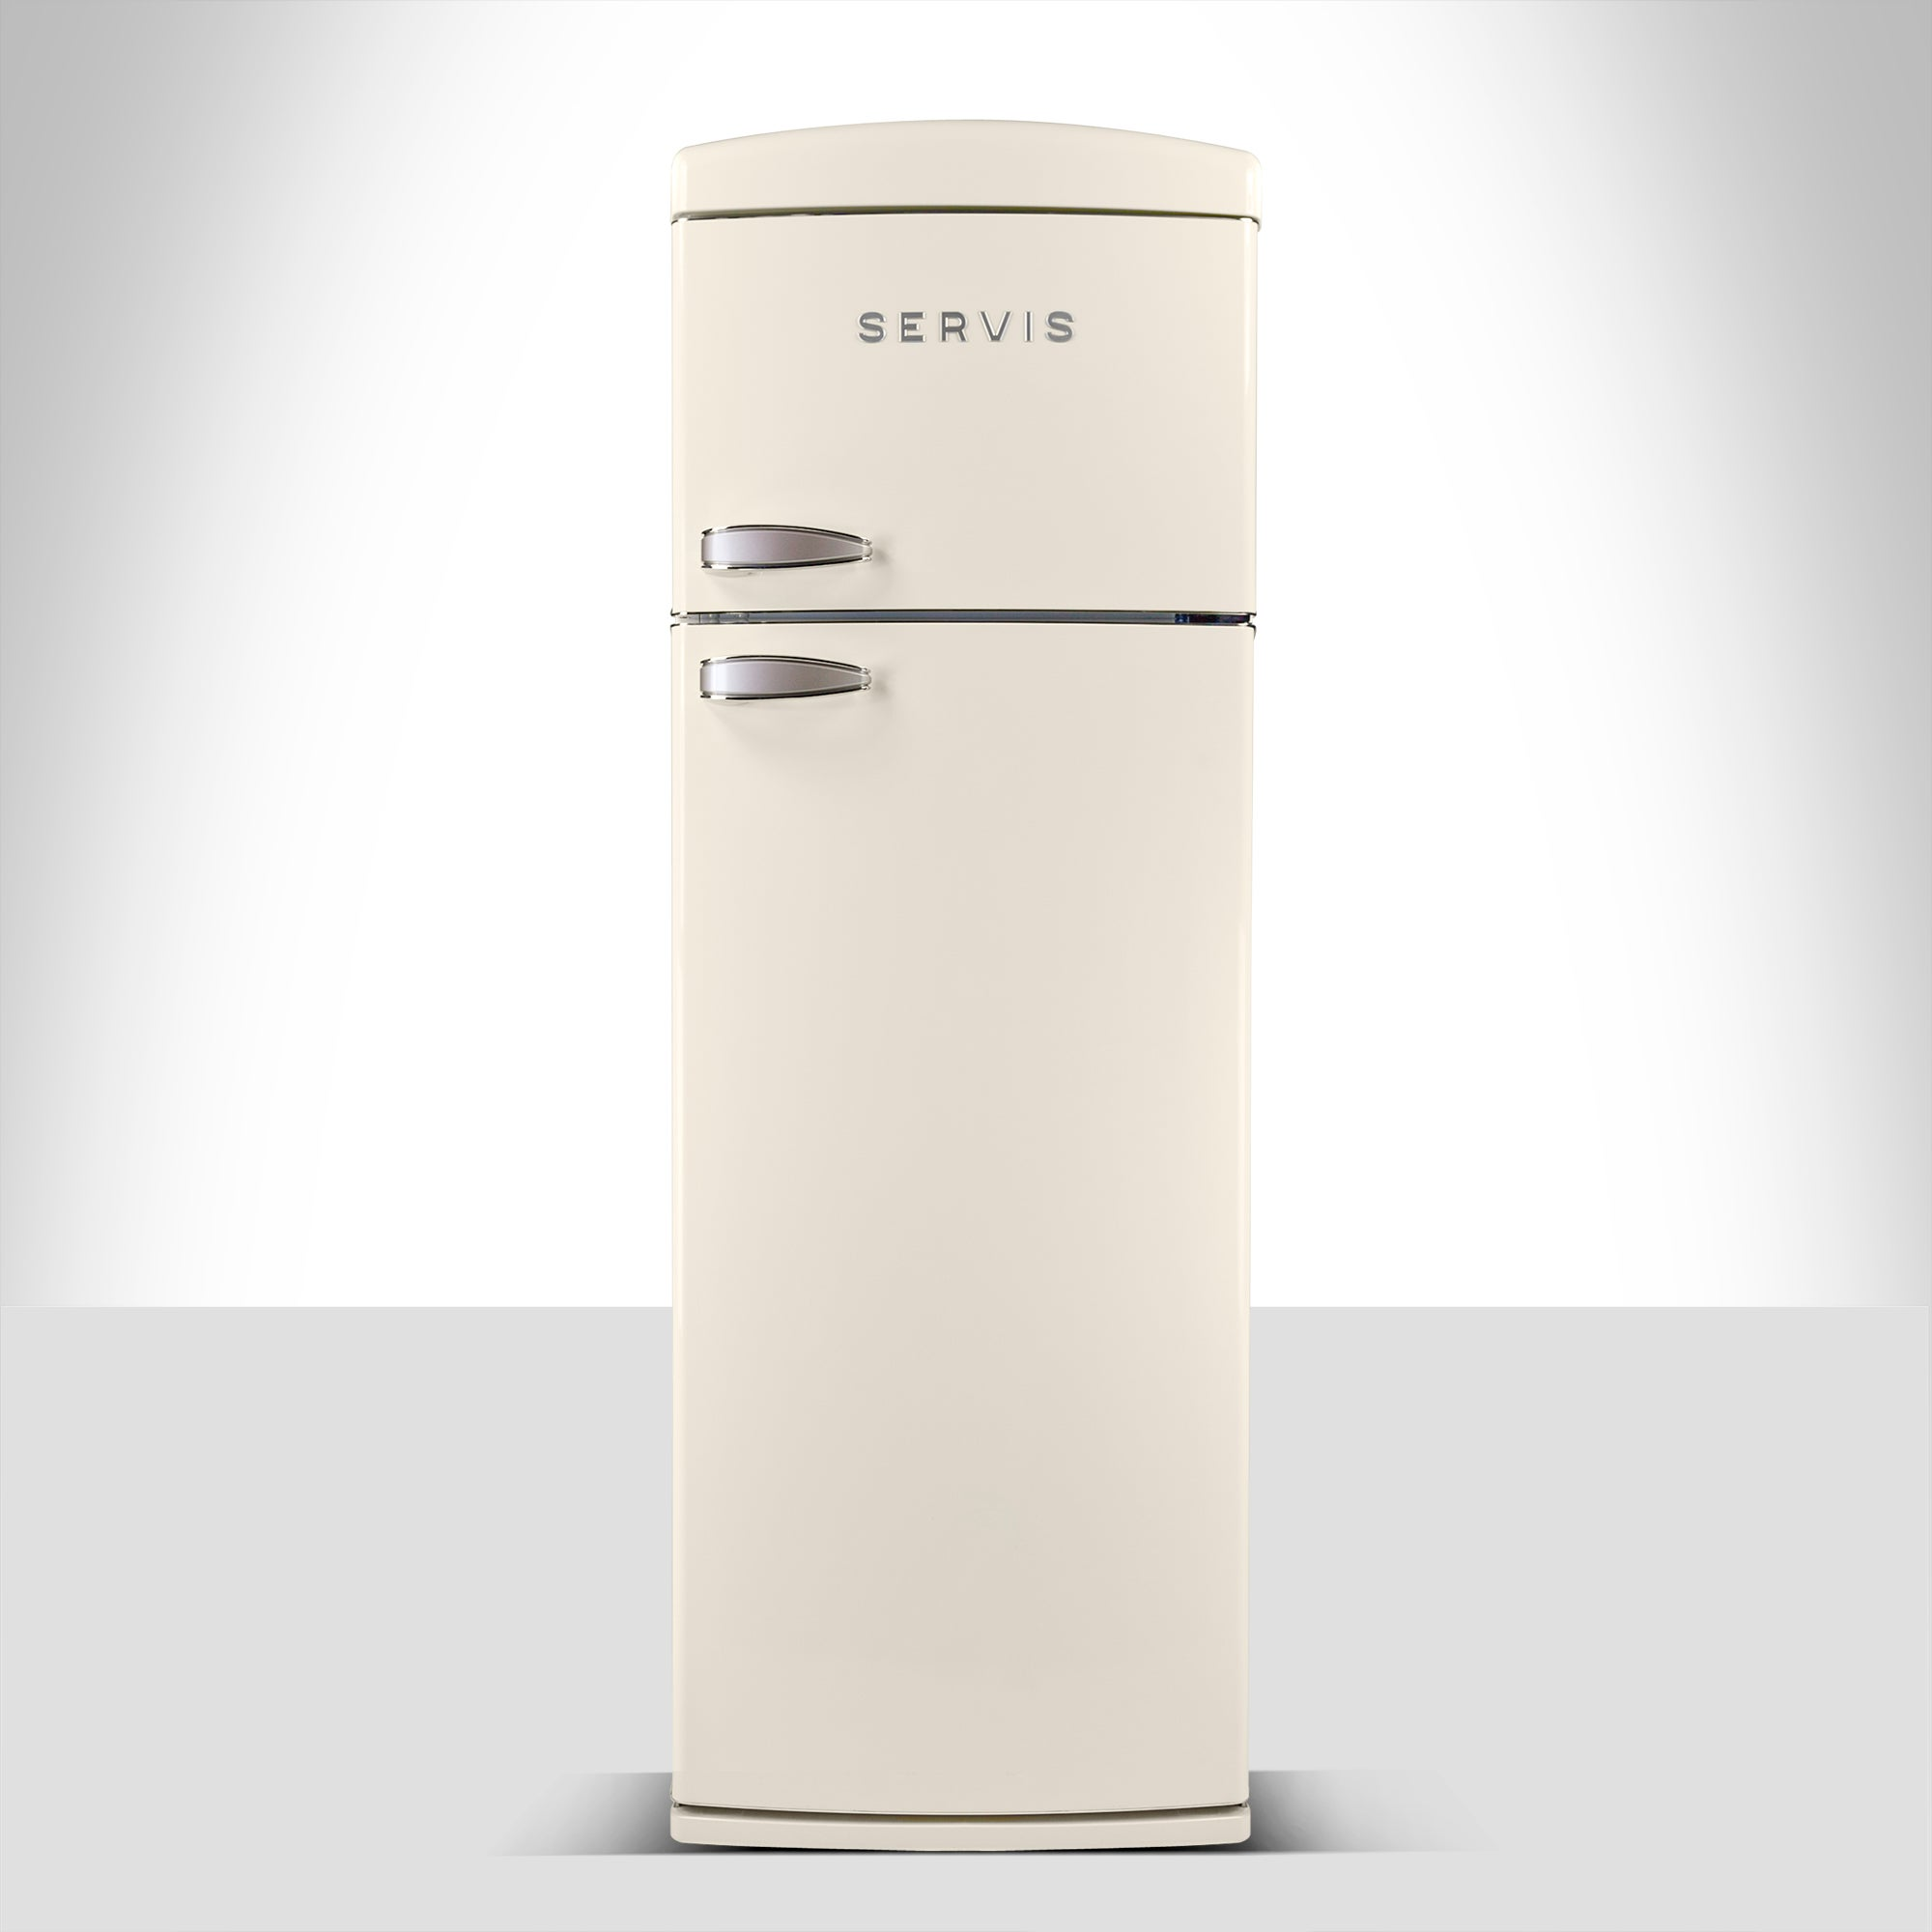 Servis T60170C Cream Retro Style Topmount Fridge Freezer